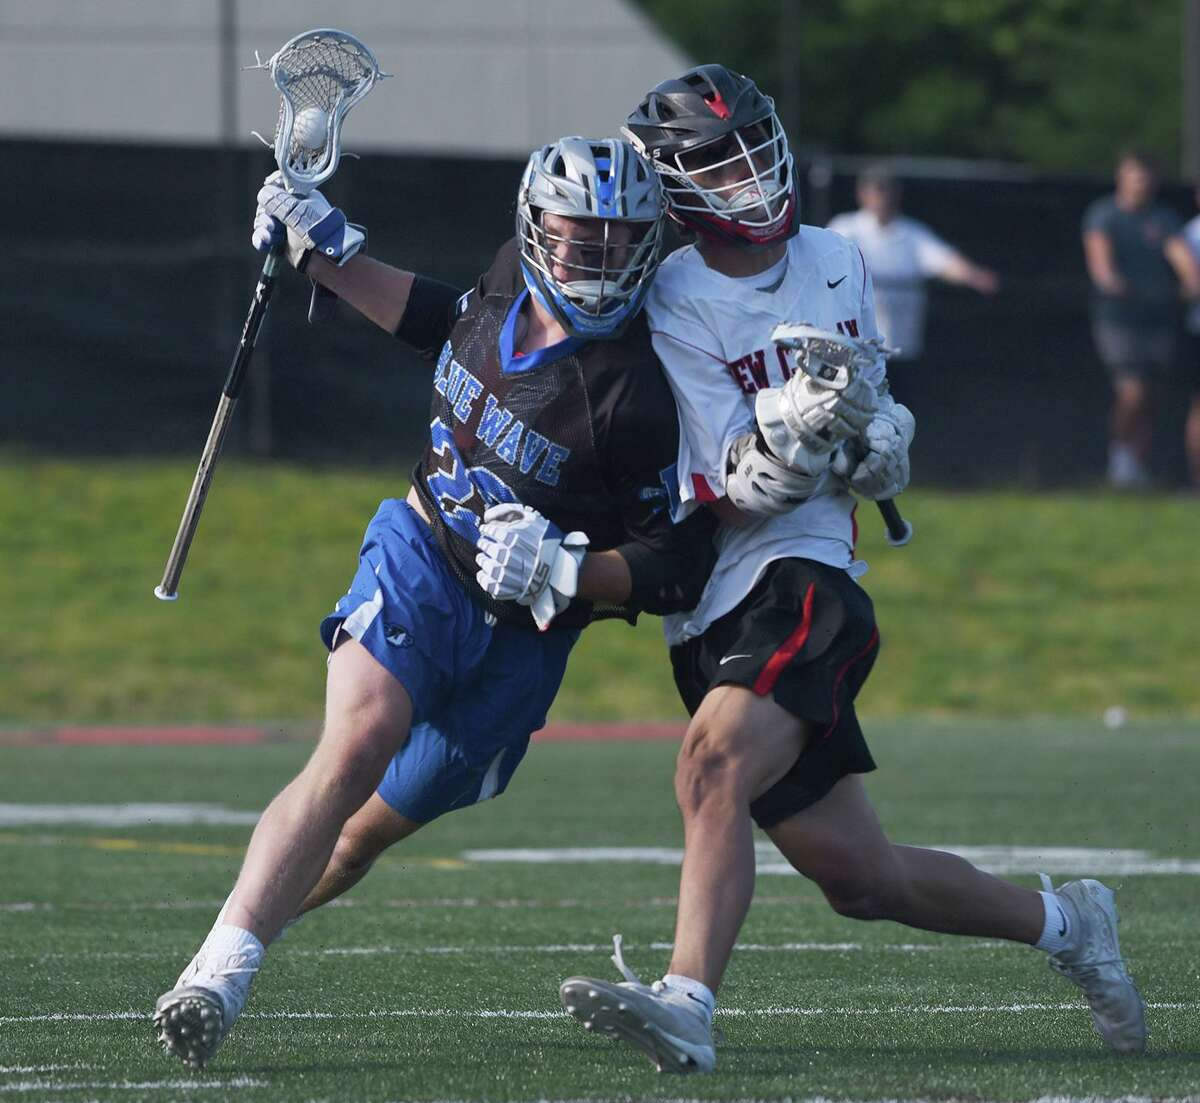 Darien's Tighe Cummiskey, left, and New Canaan's Hayden Shin collide during a boys lacrosse game on Thursday in New Canaan.